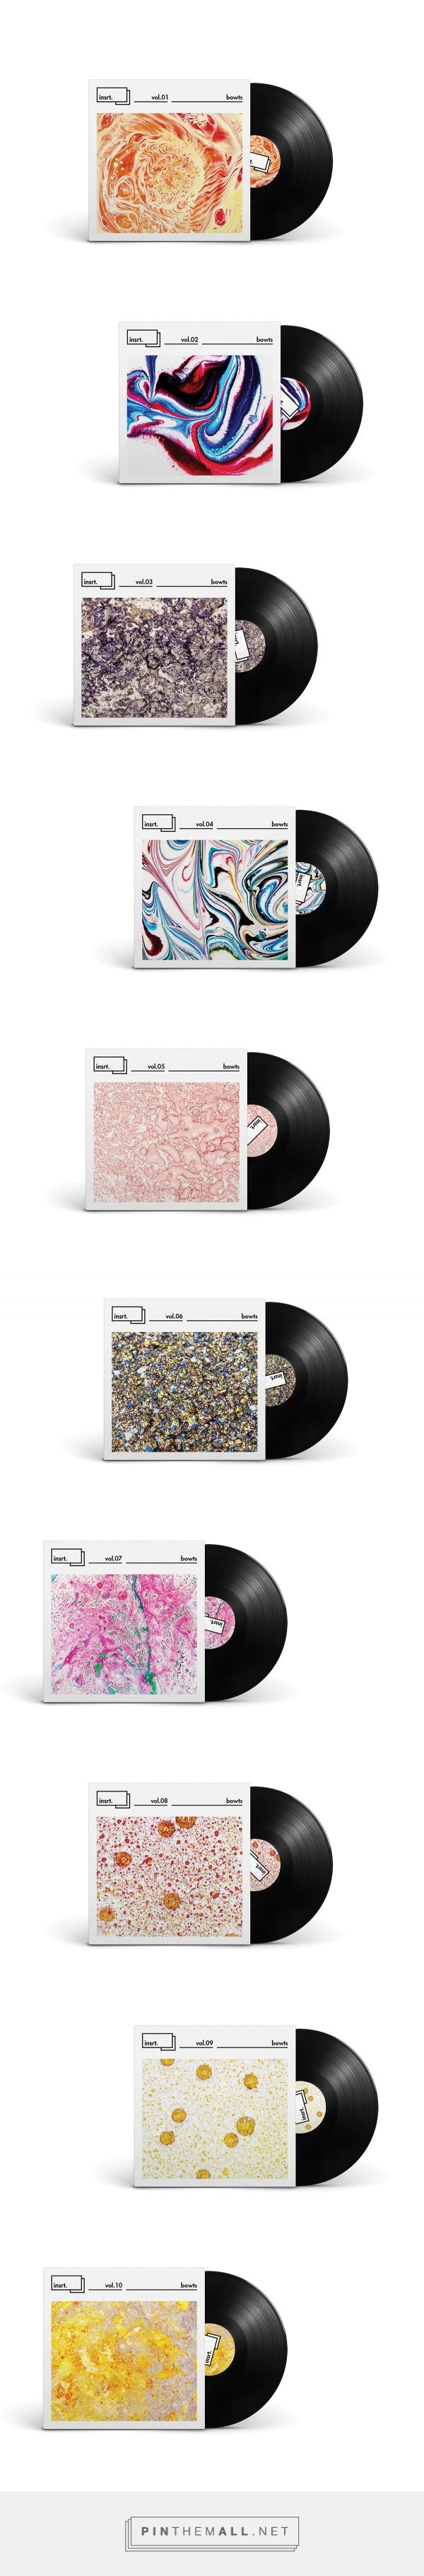 INSRT. on Branding Served curated by Packaging Diva PD. Album cover packaging patterns that are sure to inspire you.